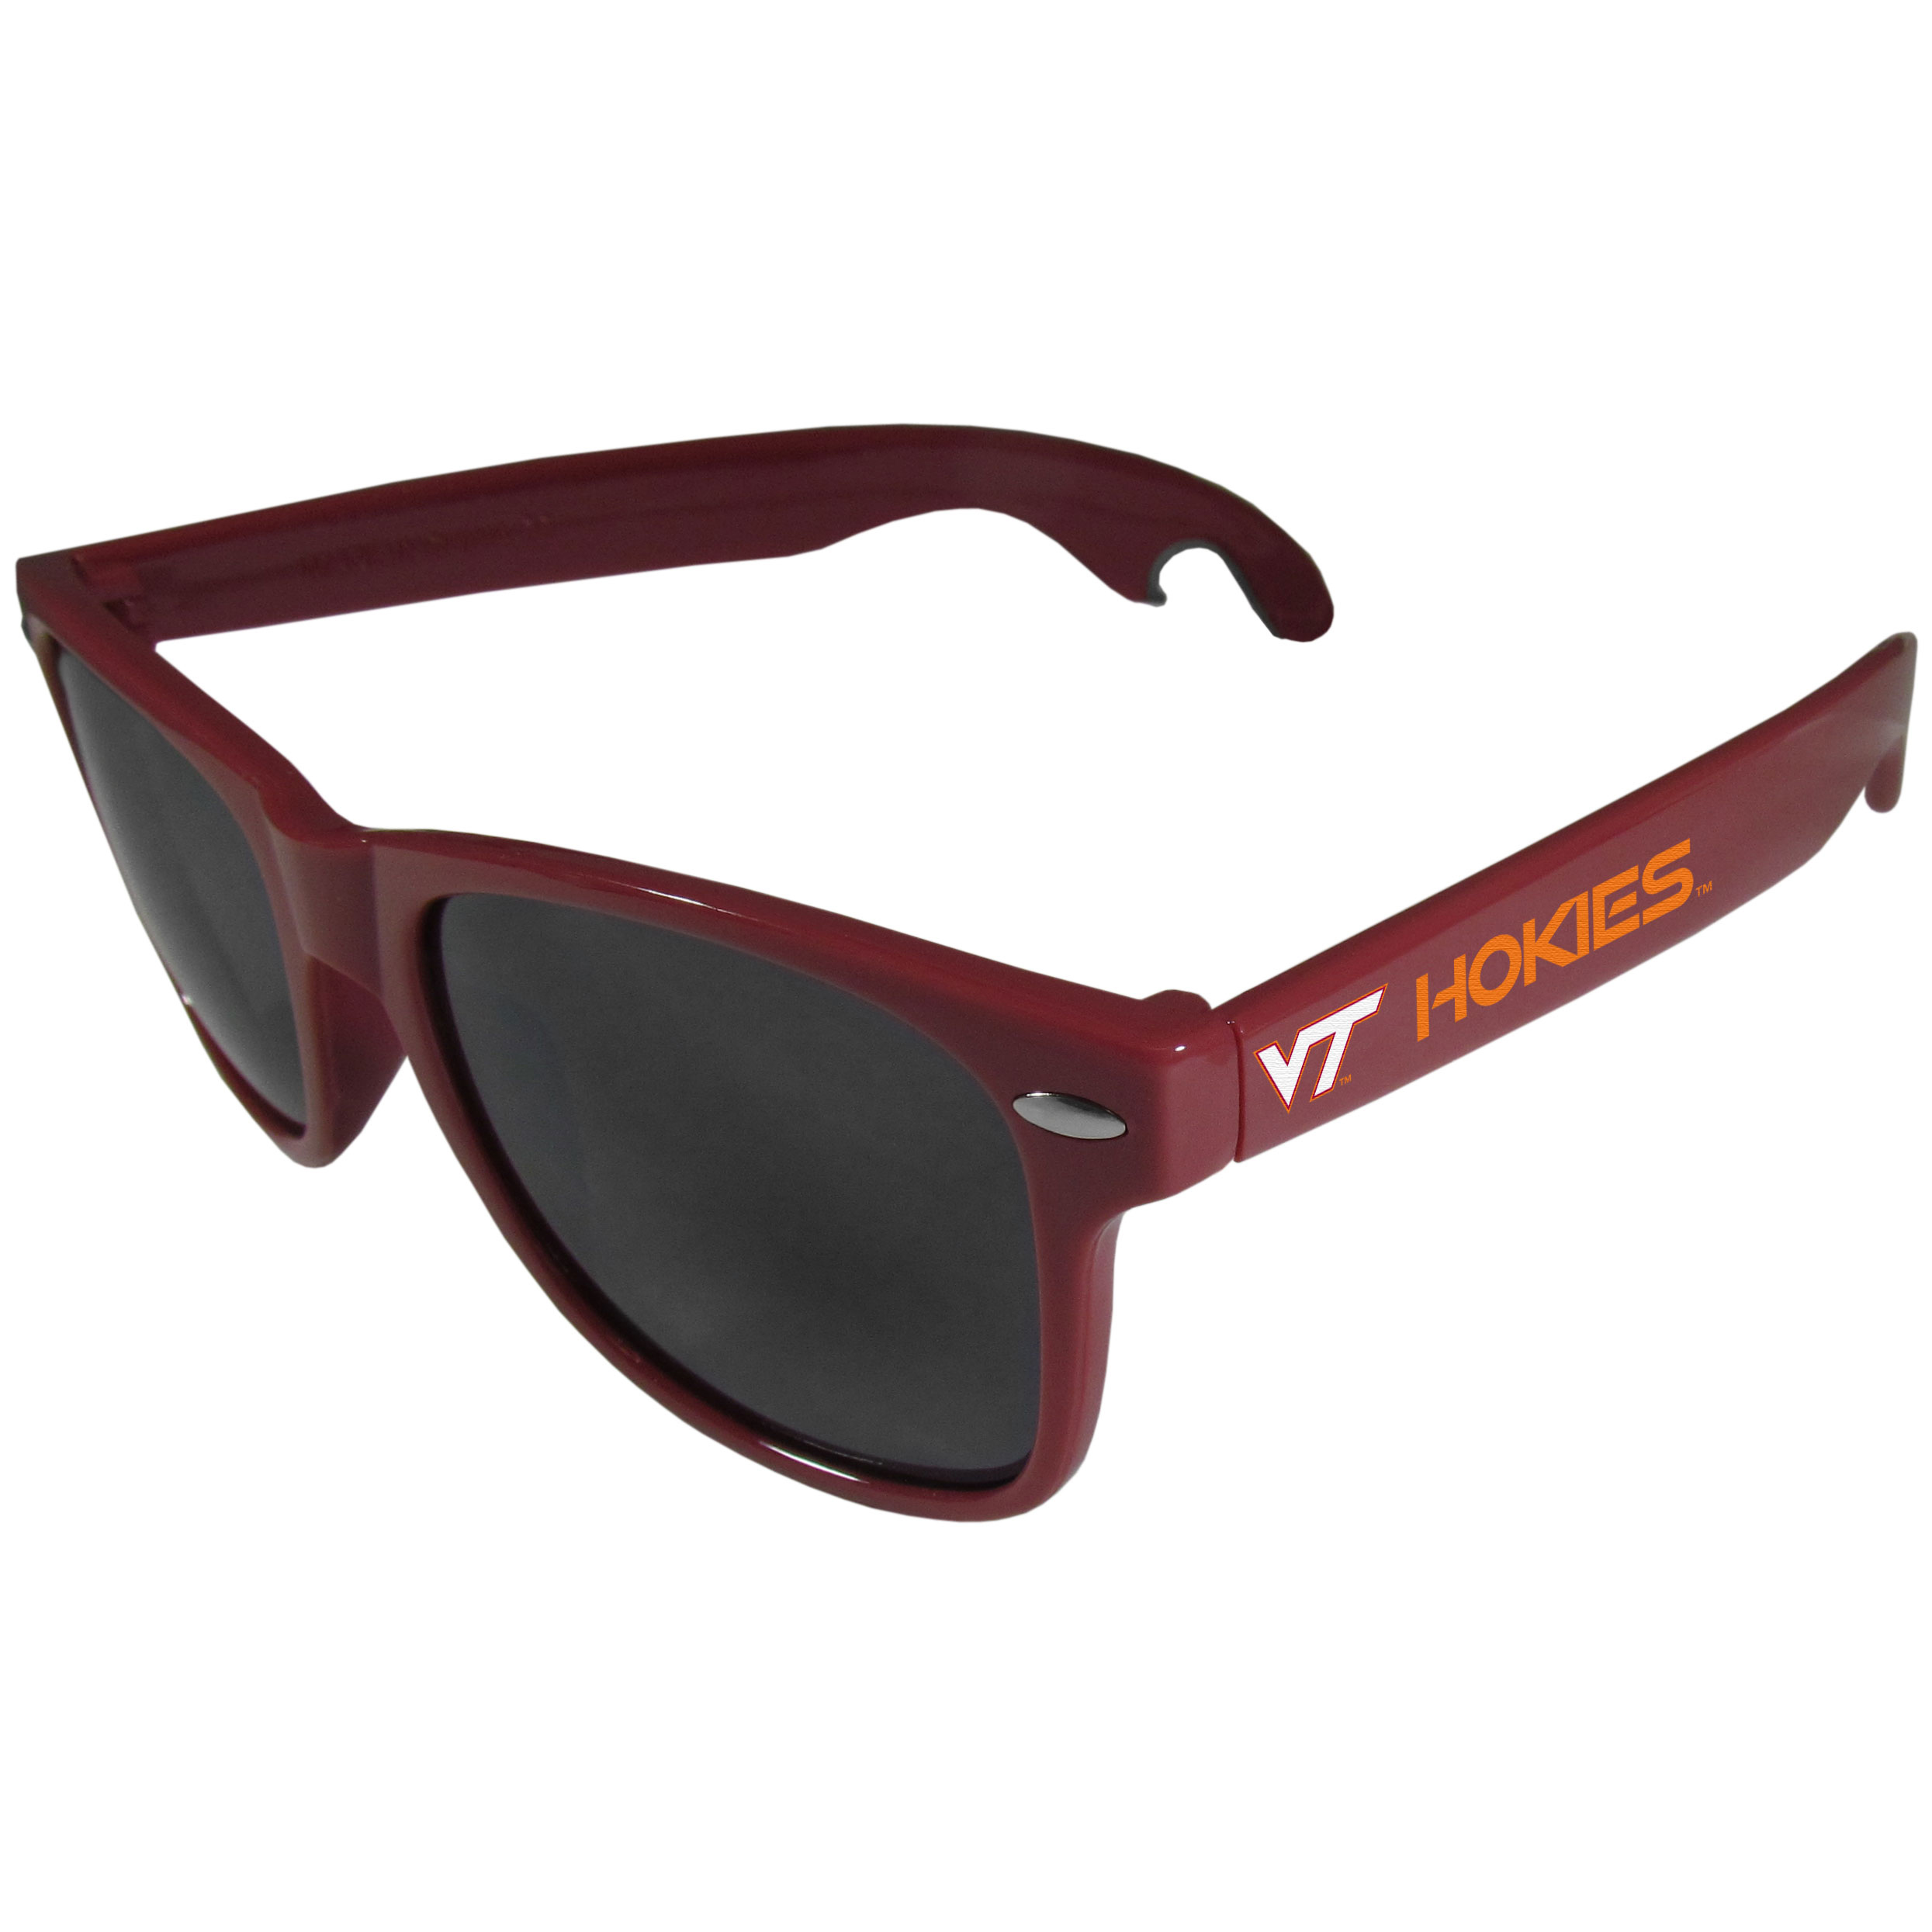 Virginia Tech Hokies Beachfarer Bottle Opener Sunglasses, Maroon - Seriously, these sunglasses open bottles! Keep the party going with these amazing Virginia Tech Hokies bottle opener sunglasses. The stylish retro frames feature team designs on the arms and functional bottle openers on the end of the arms. Whether you are at the beach or having a backyard BBQ on game day, these shades will keep your eyes protected with 100% UVA/UVB protection and keep you hydrated with the handy bottle opener arms.